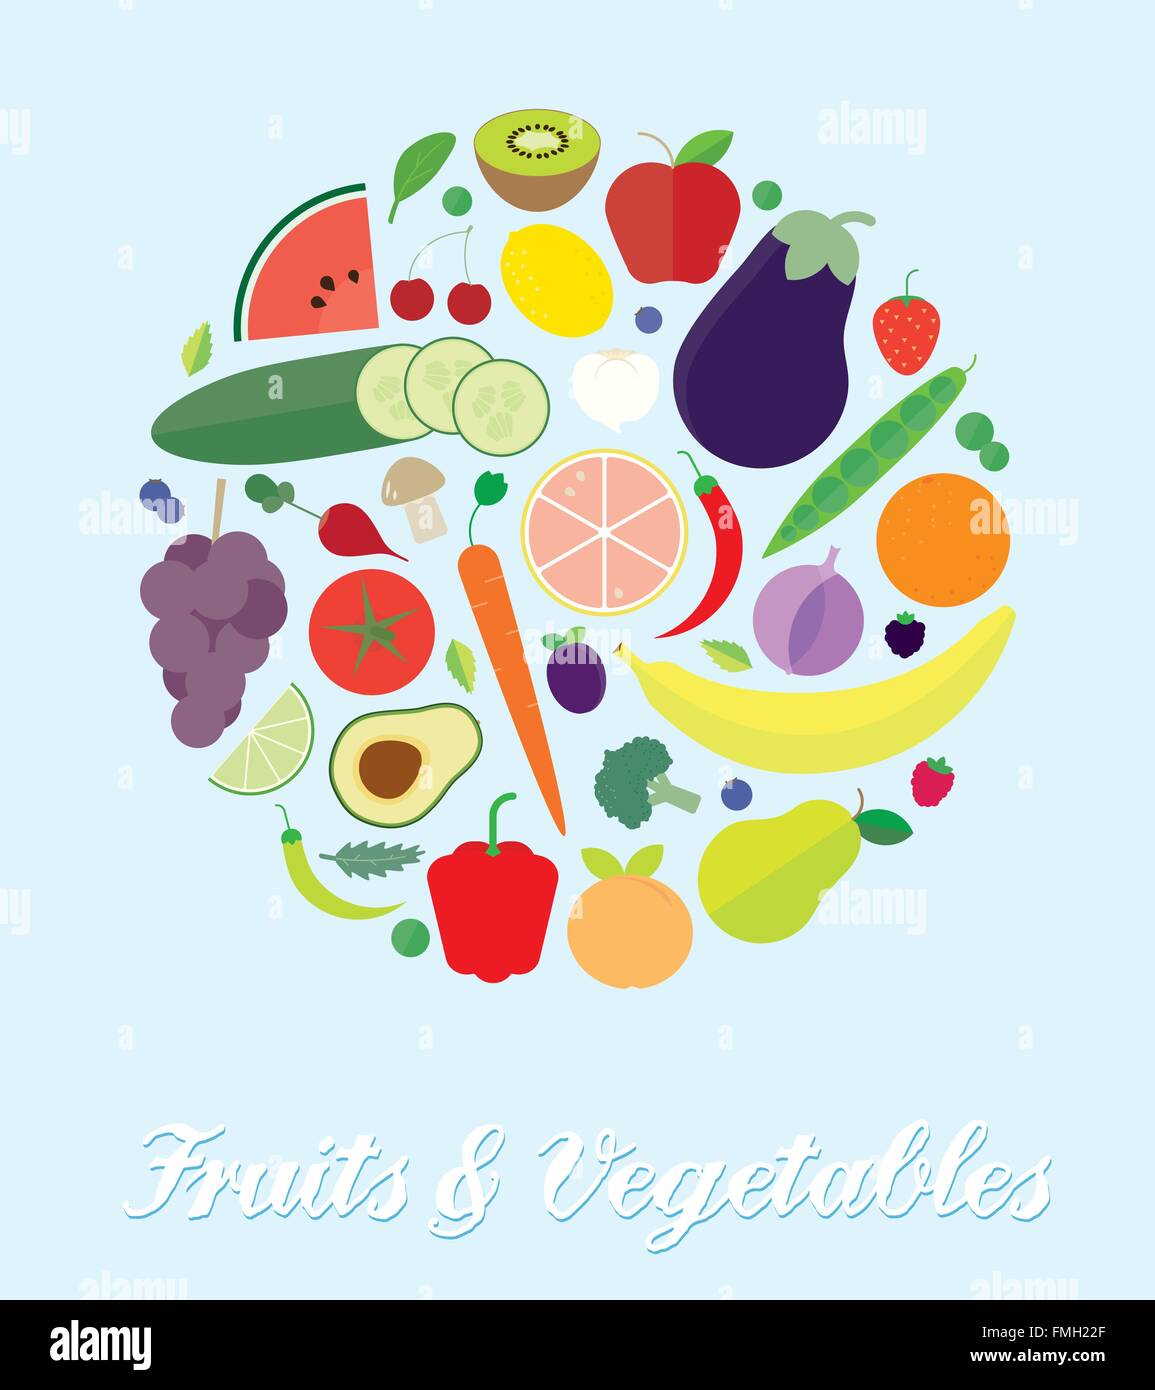 Illustration of various fruits and vegetables arranged in a circle. Flat design, no gradients or transparencies. - Stock Vector